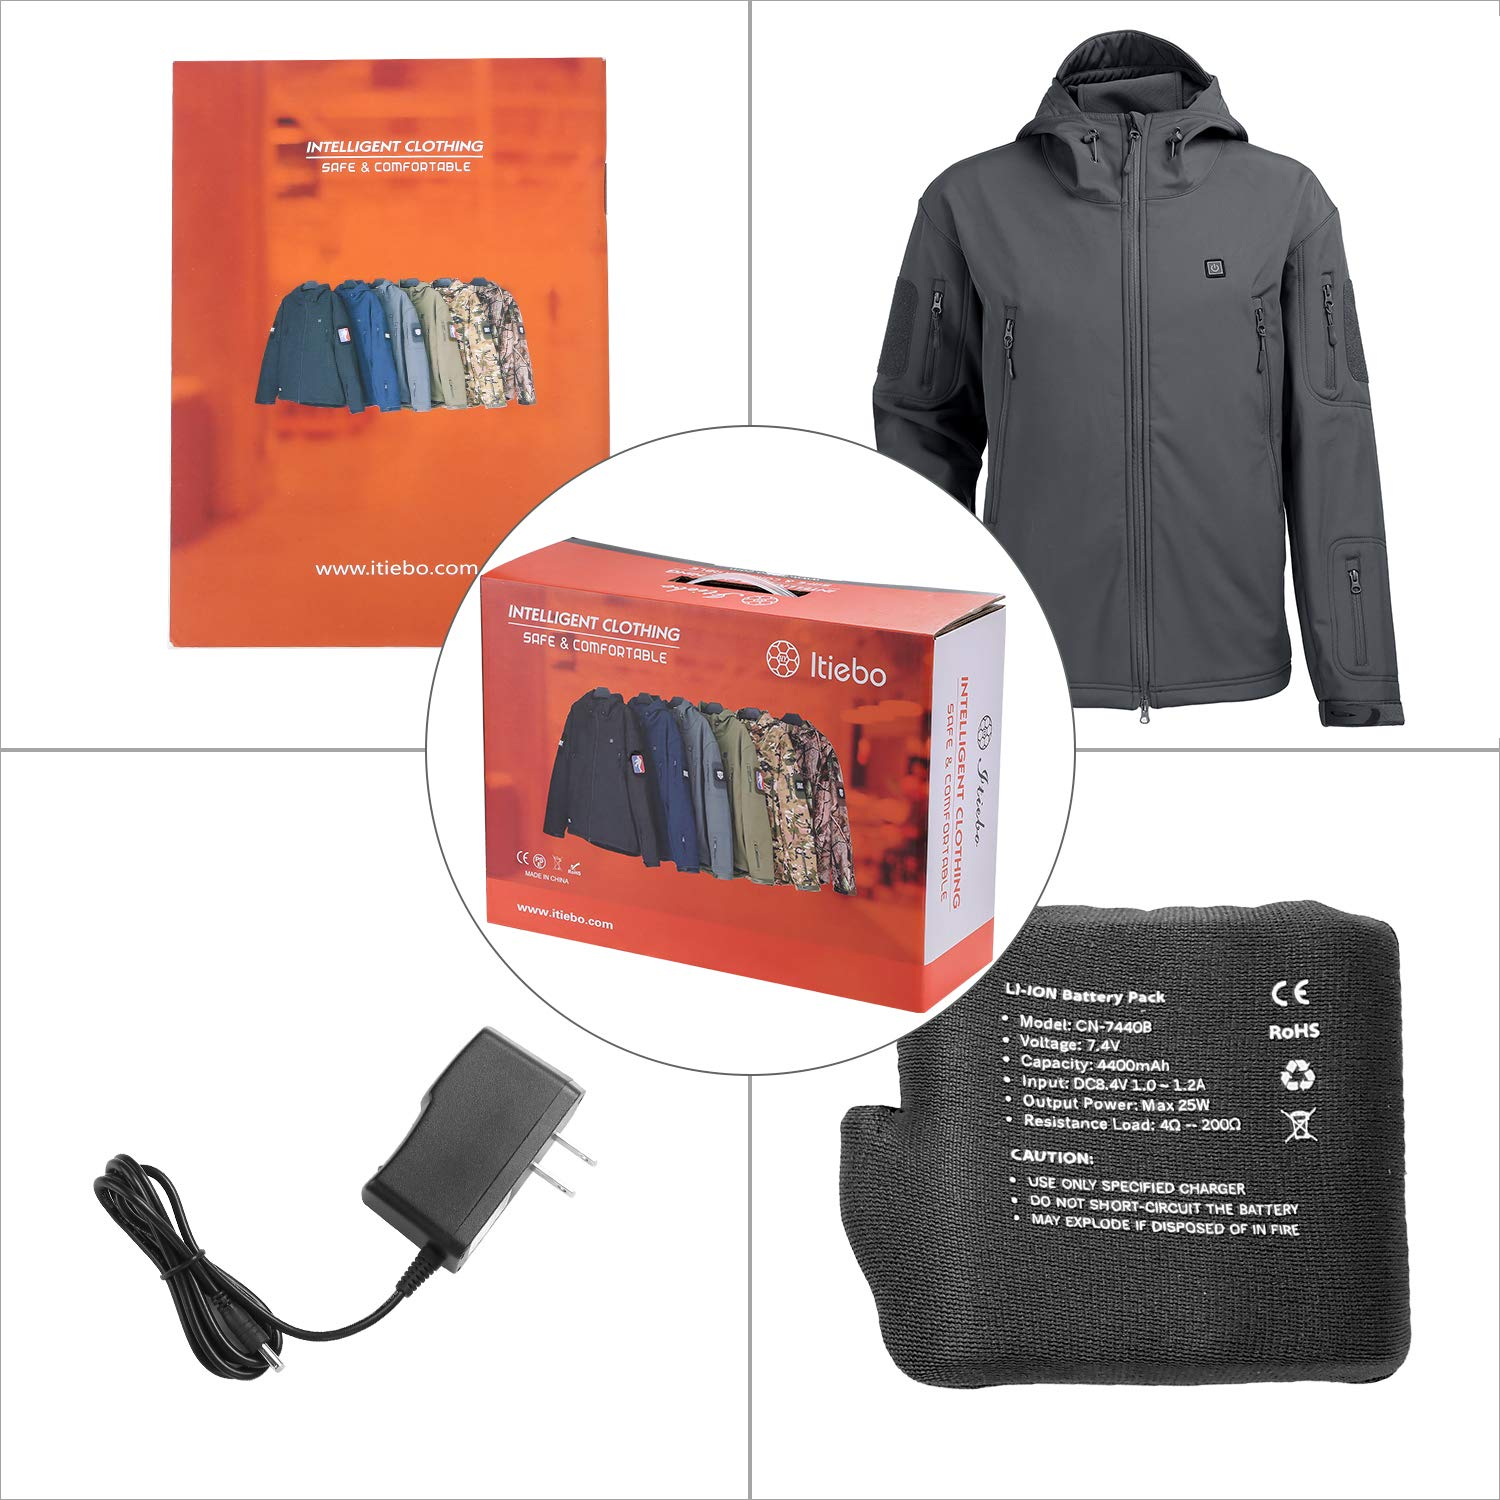 ITIEBO Mens Heated Jacket Electric Battery Pack: Waterproof Warm Heated Clothes